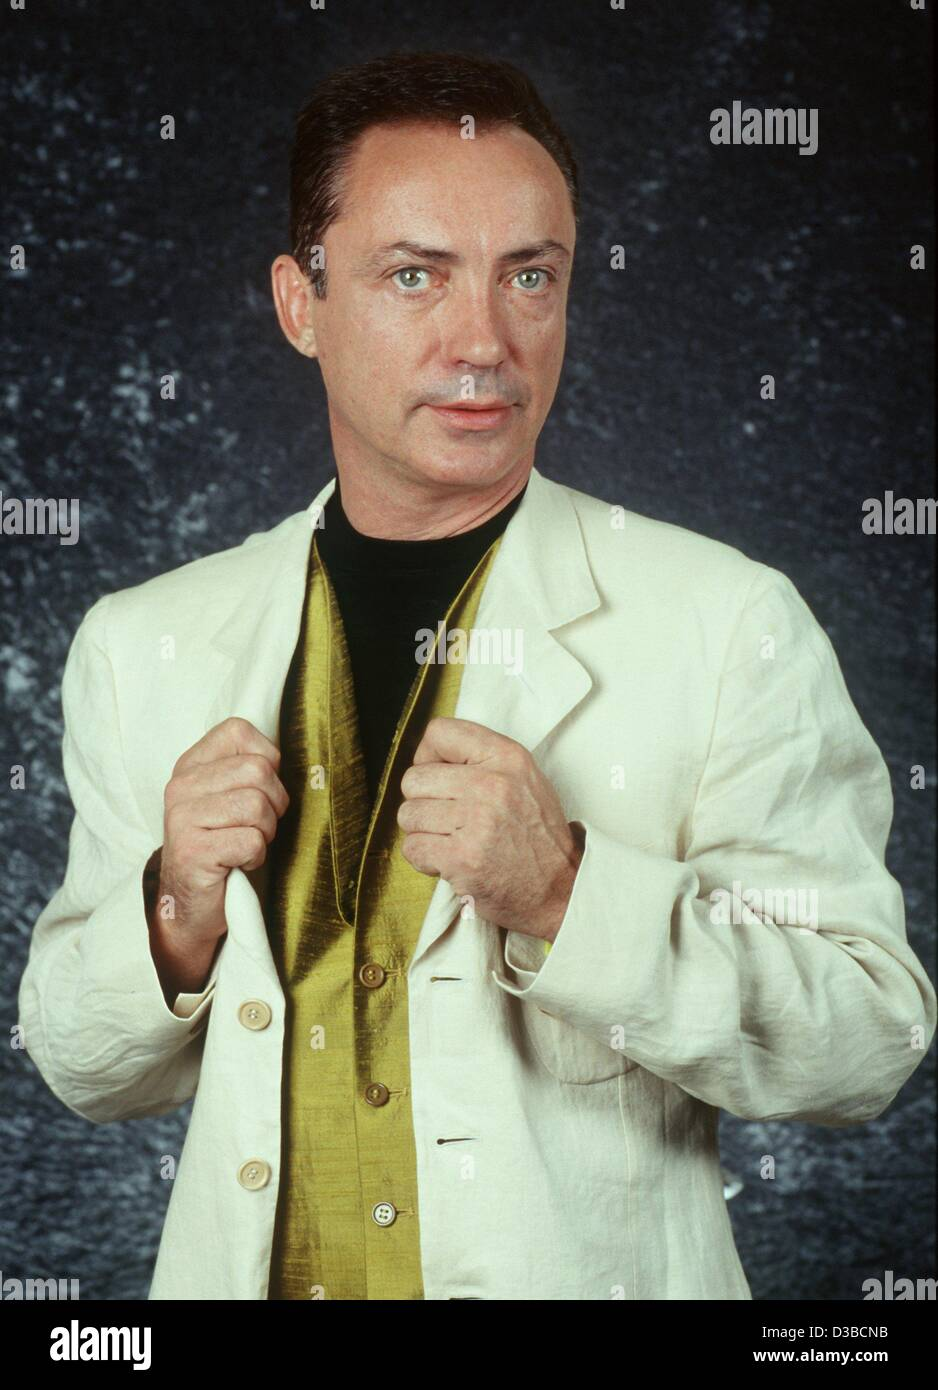 (dpa files) - German actor Udo Kier ('Armageddon', 'End of Days') poses in Mainz, Germany, August - Stock Image